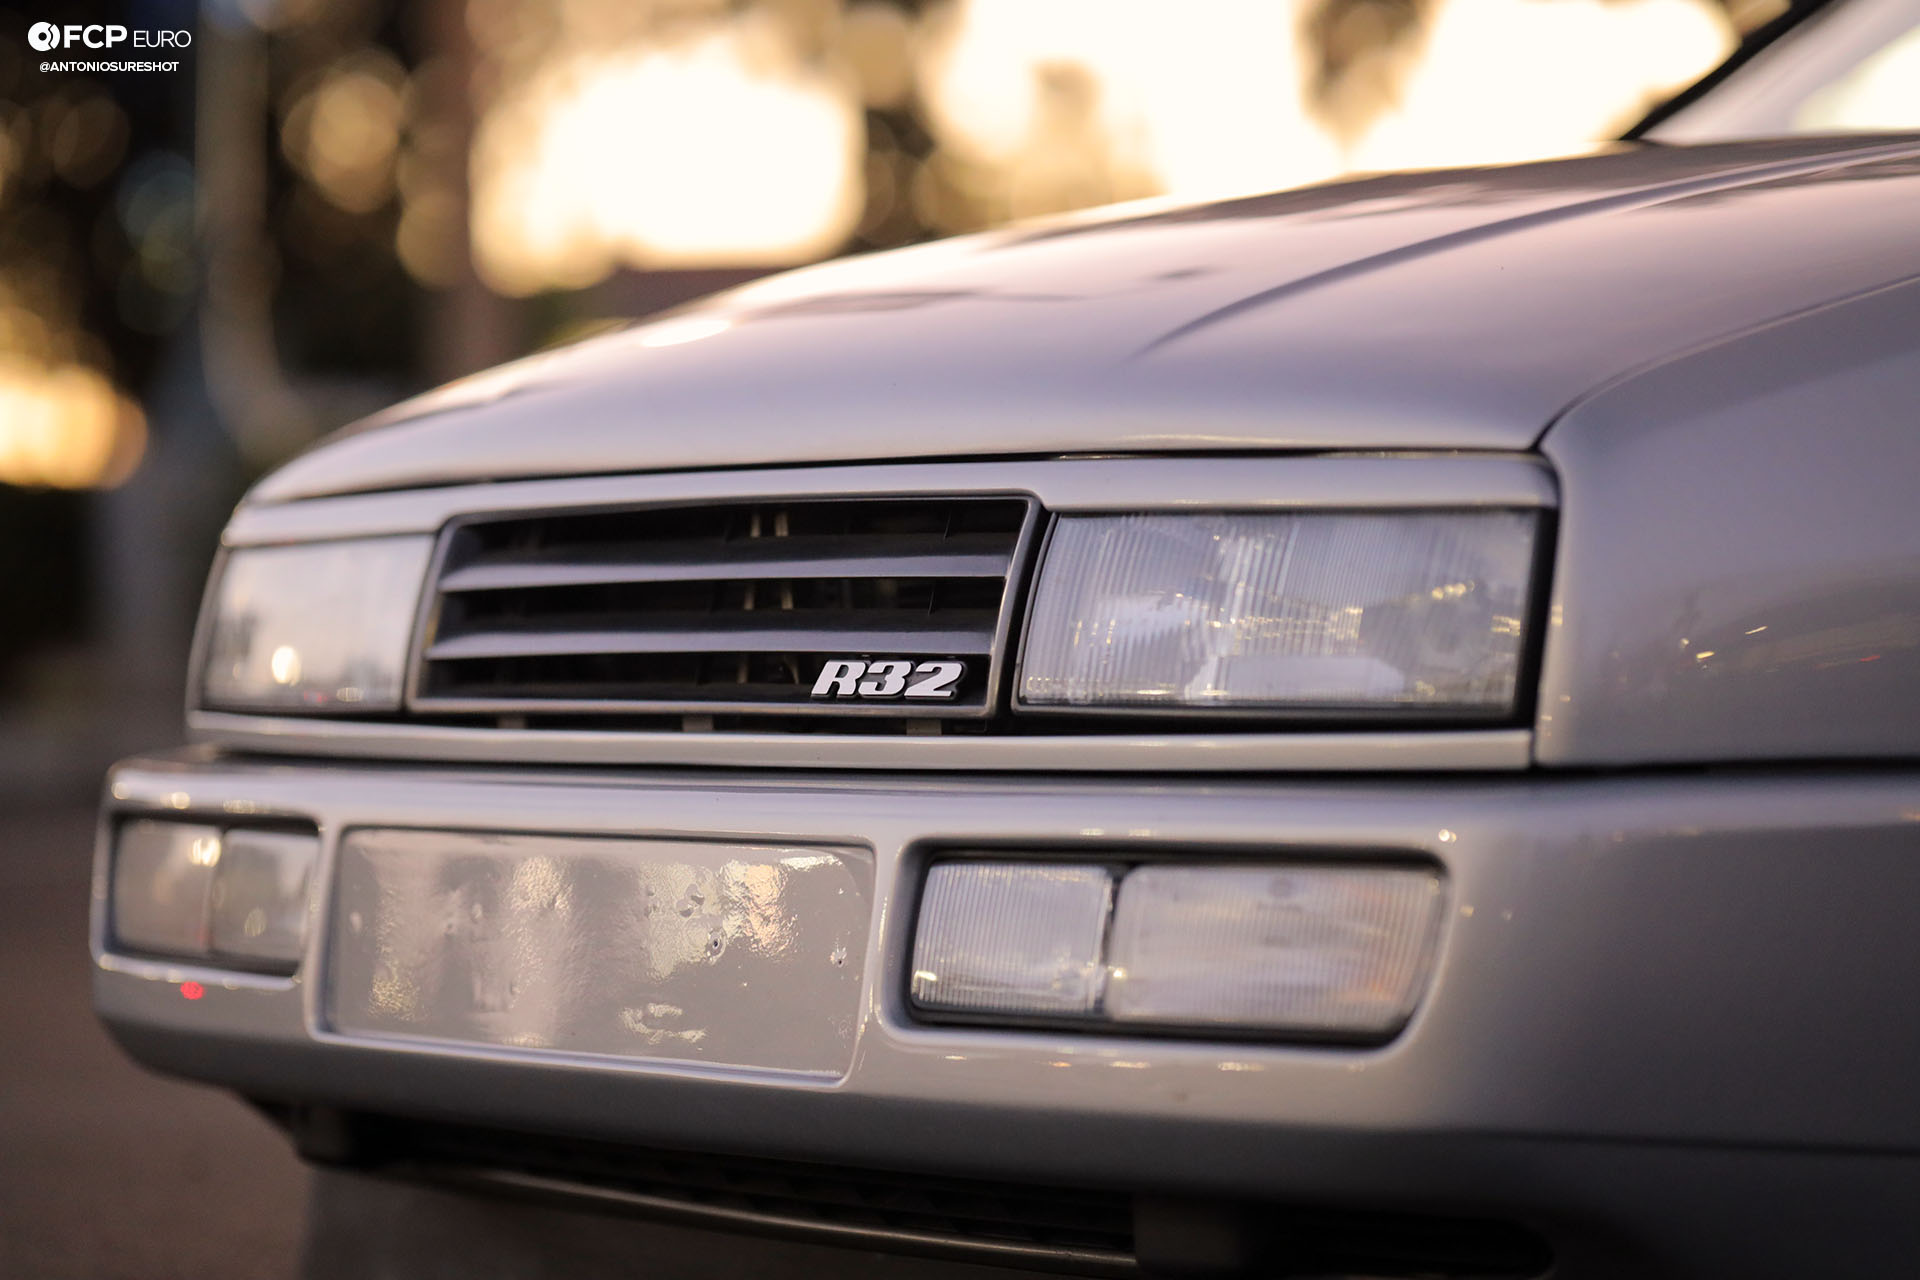 VW Corrado R32 Euro Headlights